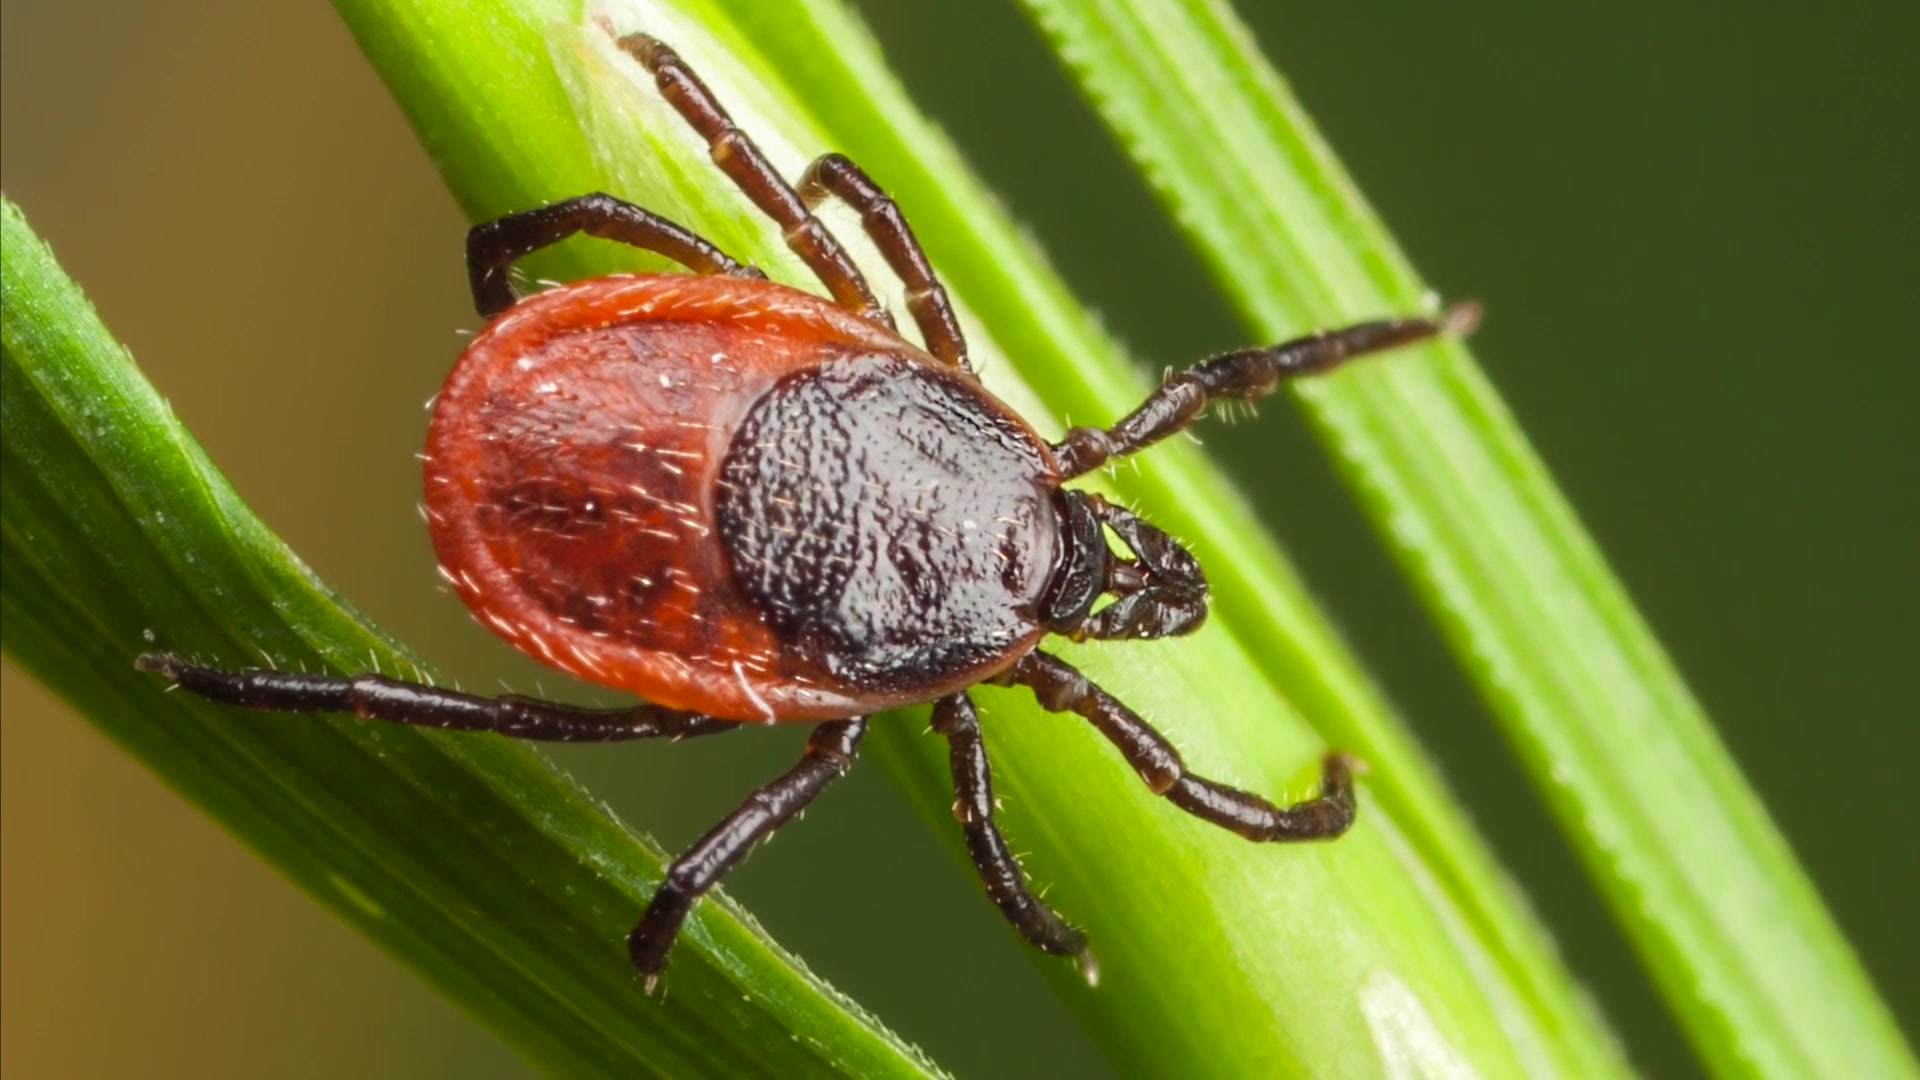 Capt. Megan Heineman, the chief of Entomology at Public Health Command Europe, discusses ticks and tricks for tick prevention.